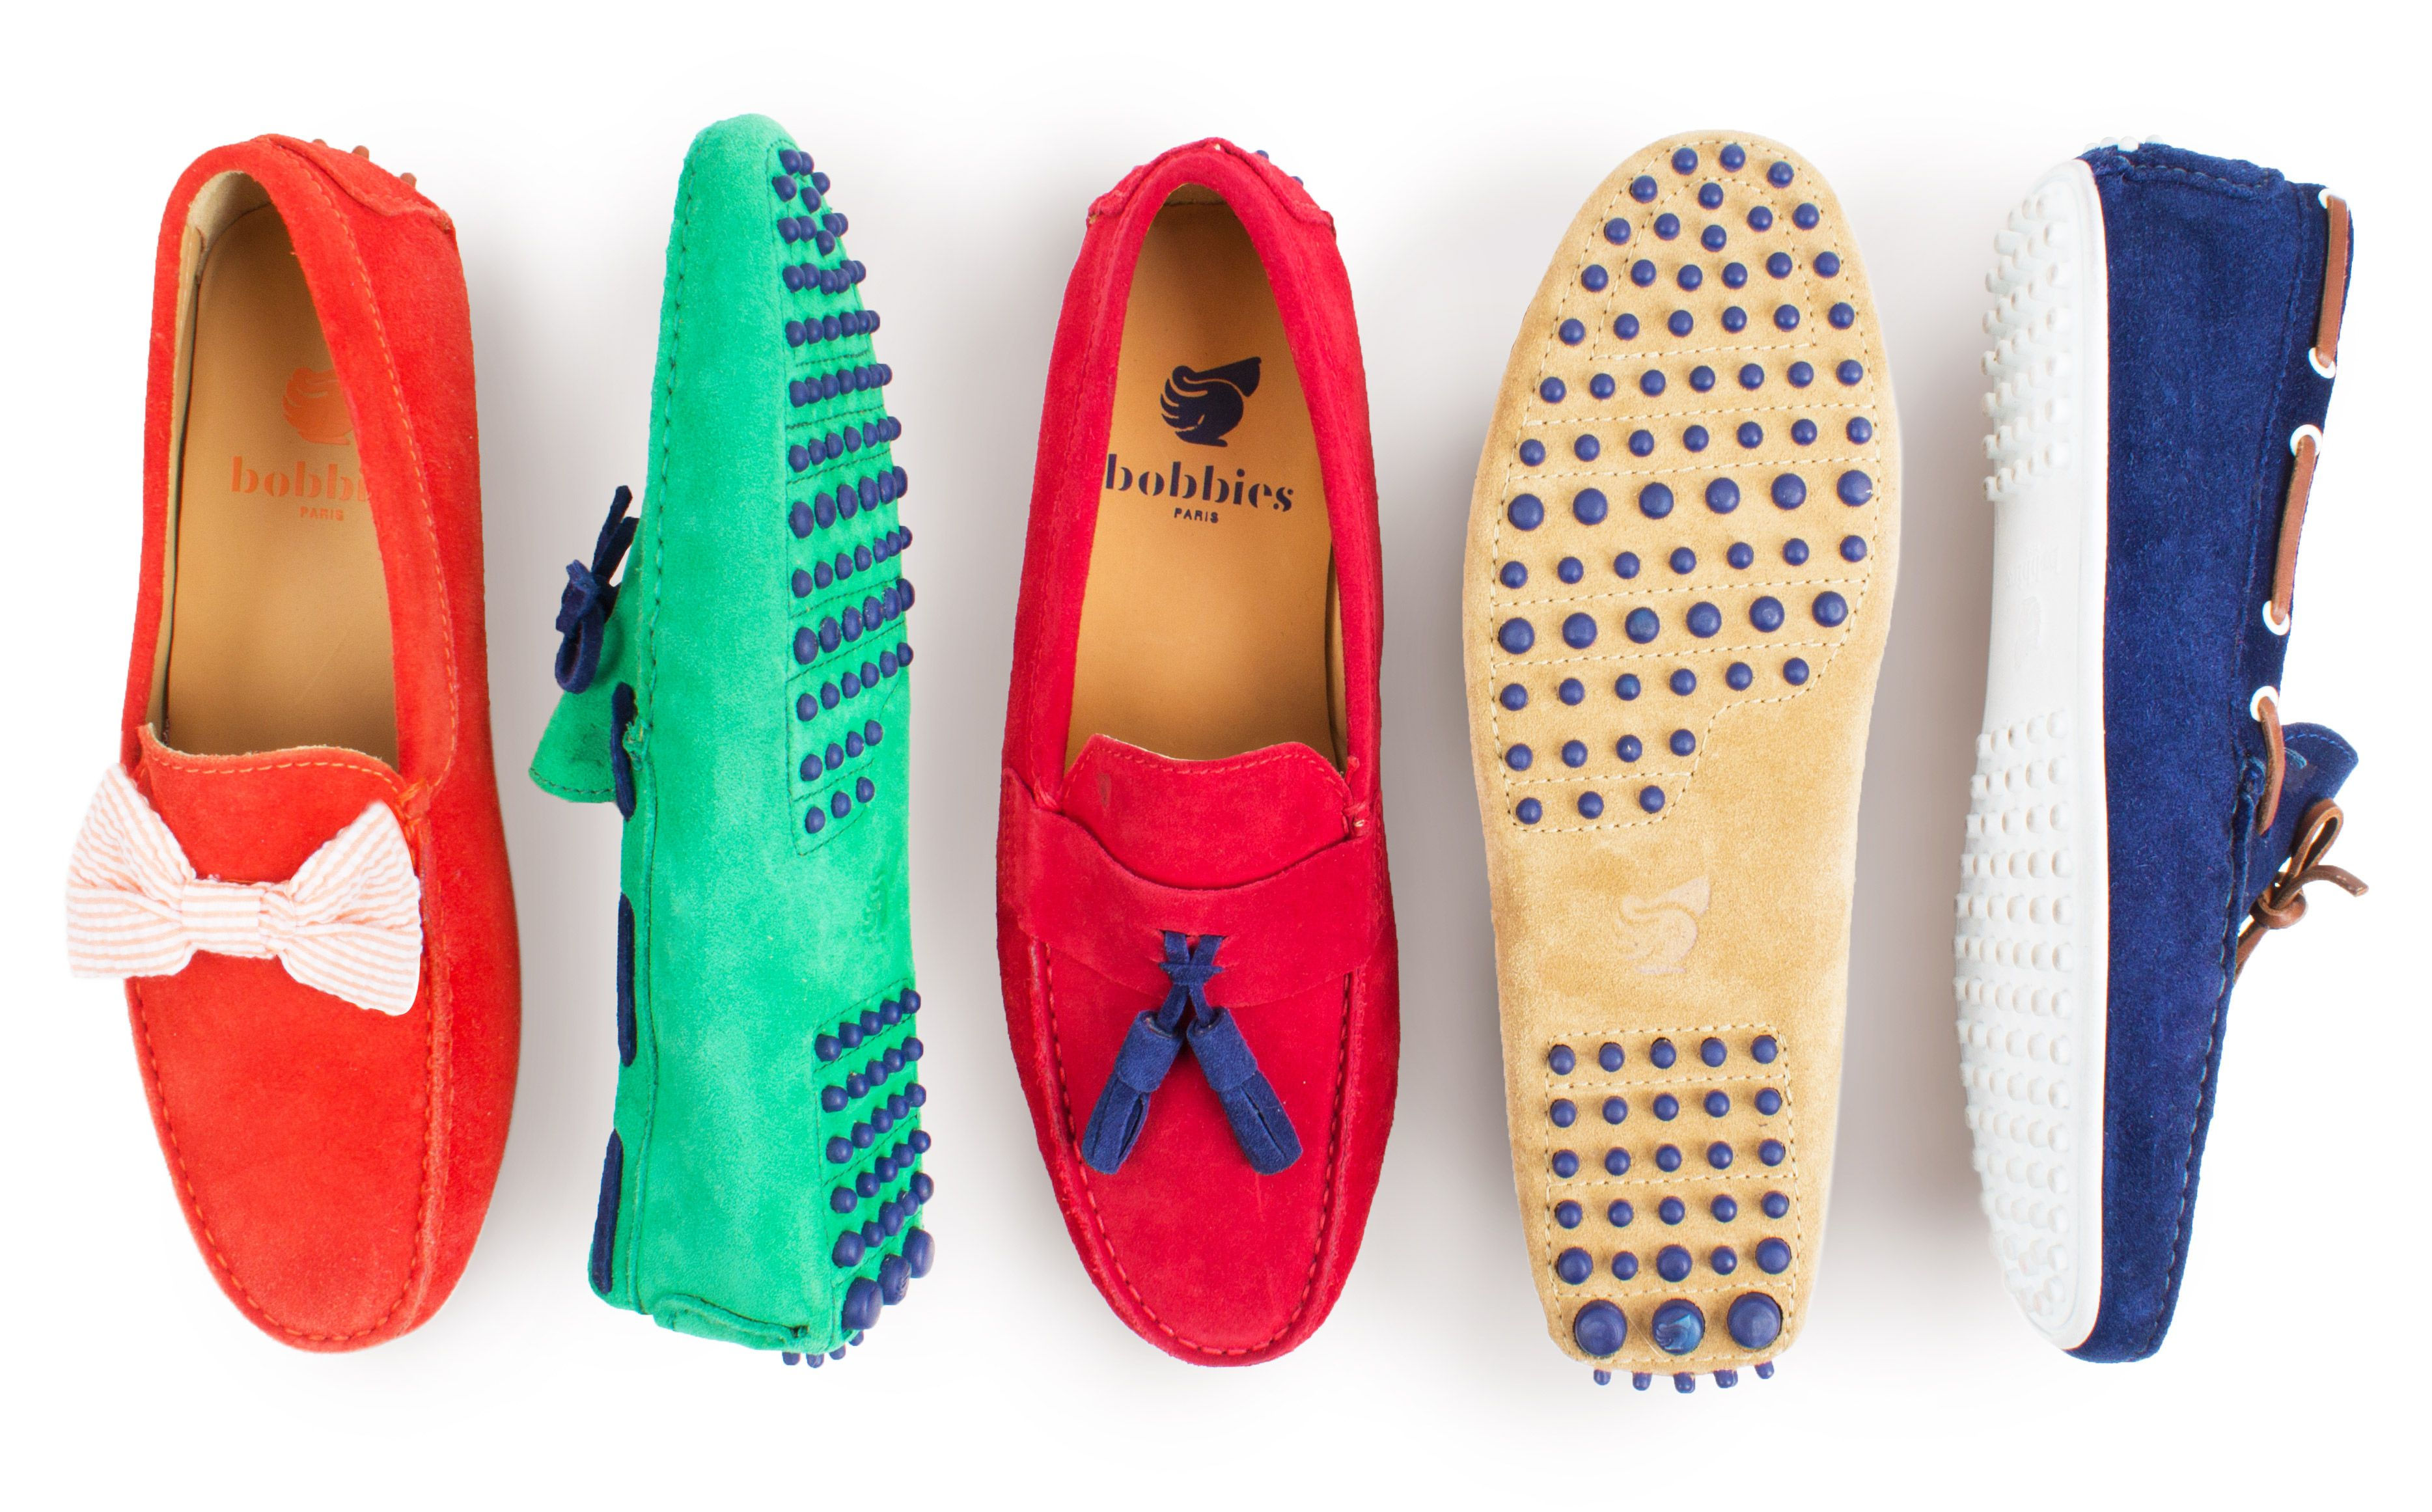 ee2f5b1a86e Men s Collection - Happy Mocassins!  Bobbies  loafers  colourful   drivingshoes. LOVE the bow tie.